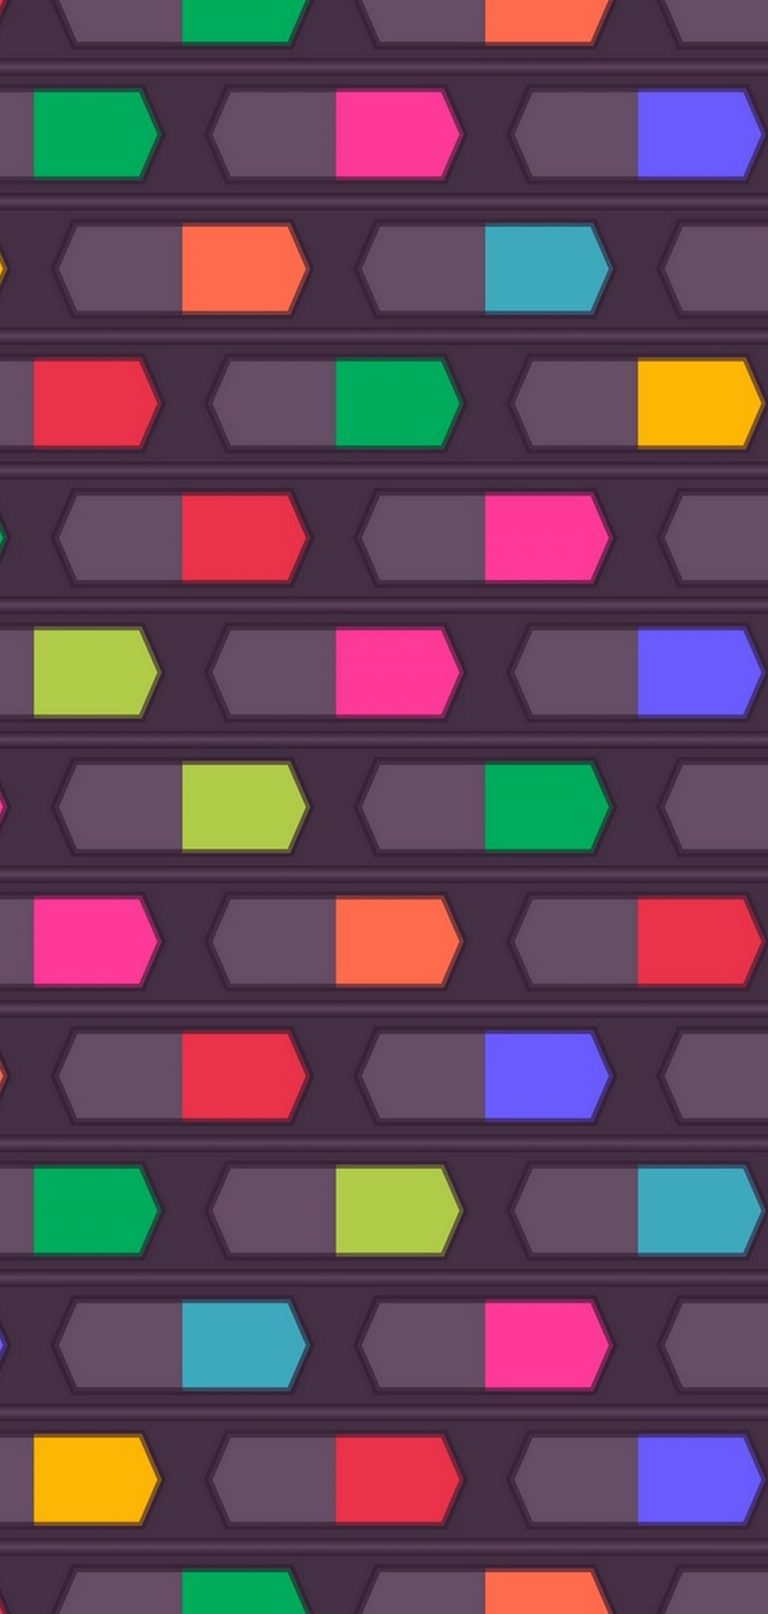 Texture Shapes Lines Background Colorful 1080x2270 768x1614